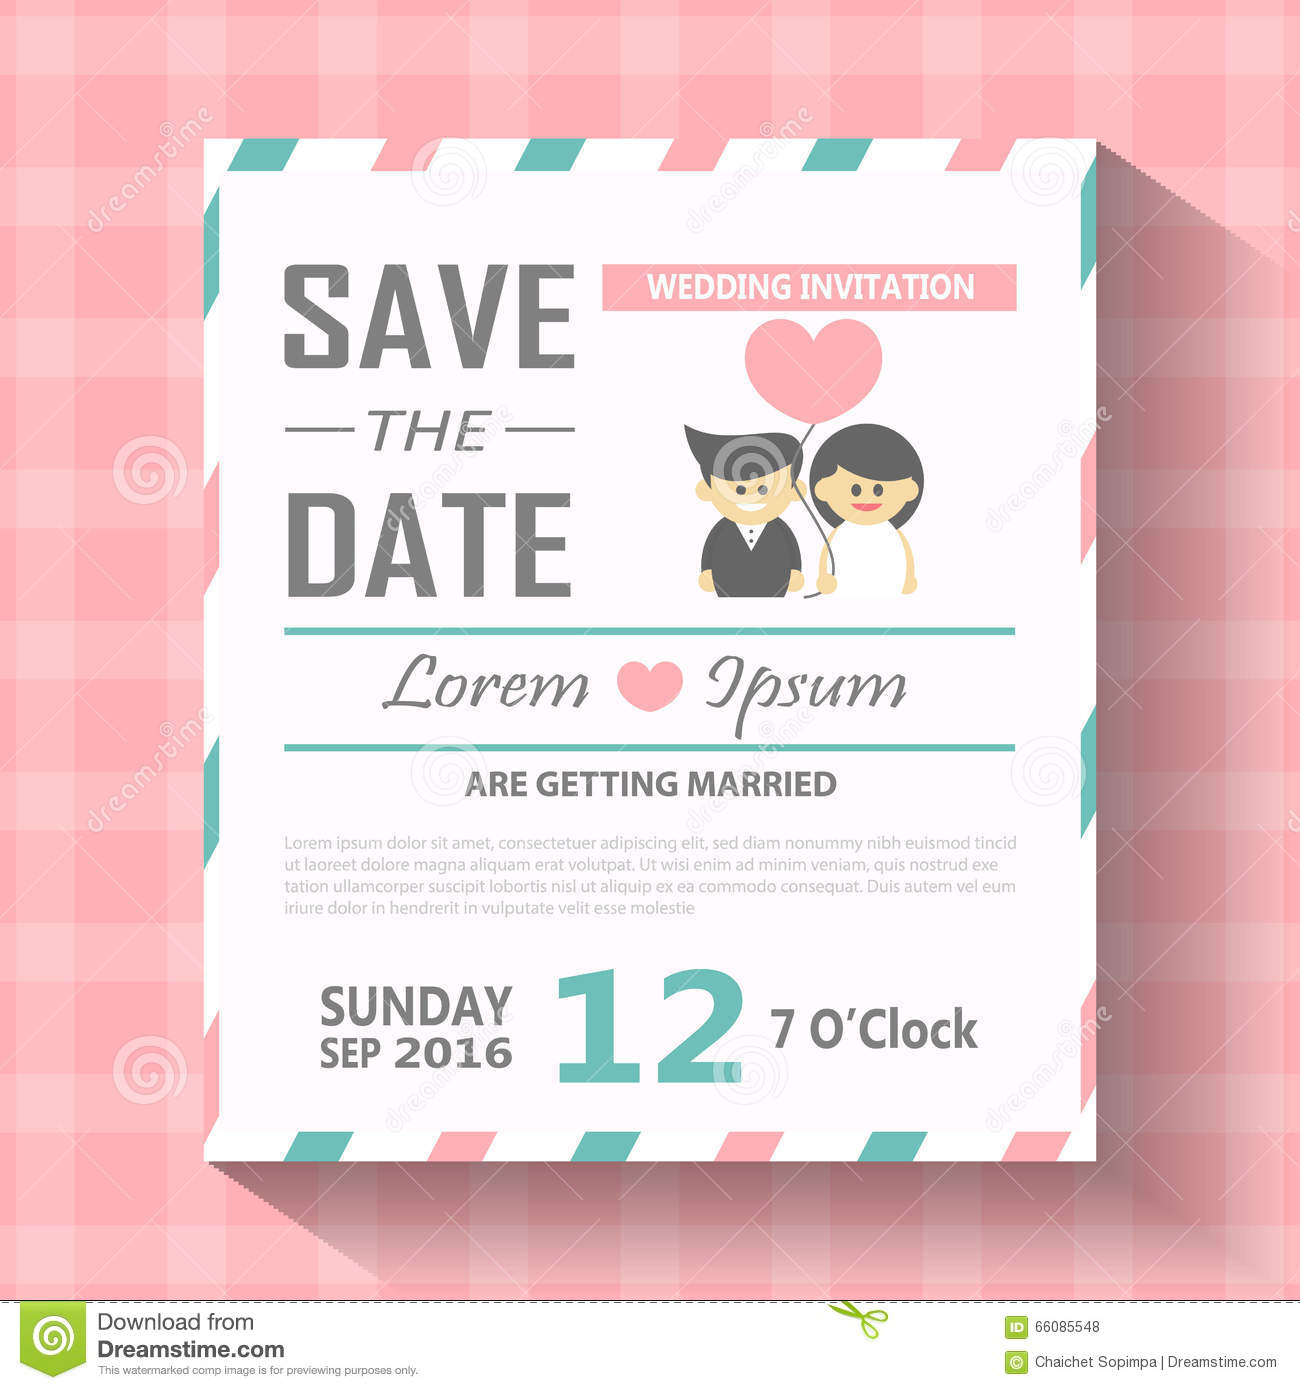 Save Date Invitation Templates Poesiafmtk - Wedding invitation templates: wedding invitation downloadable templates